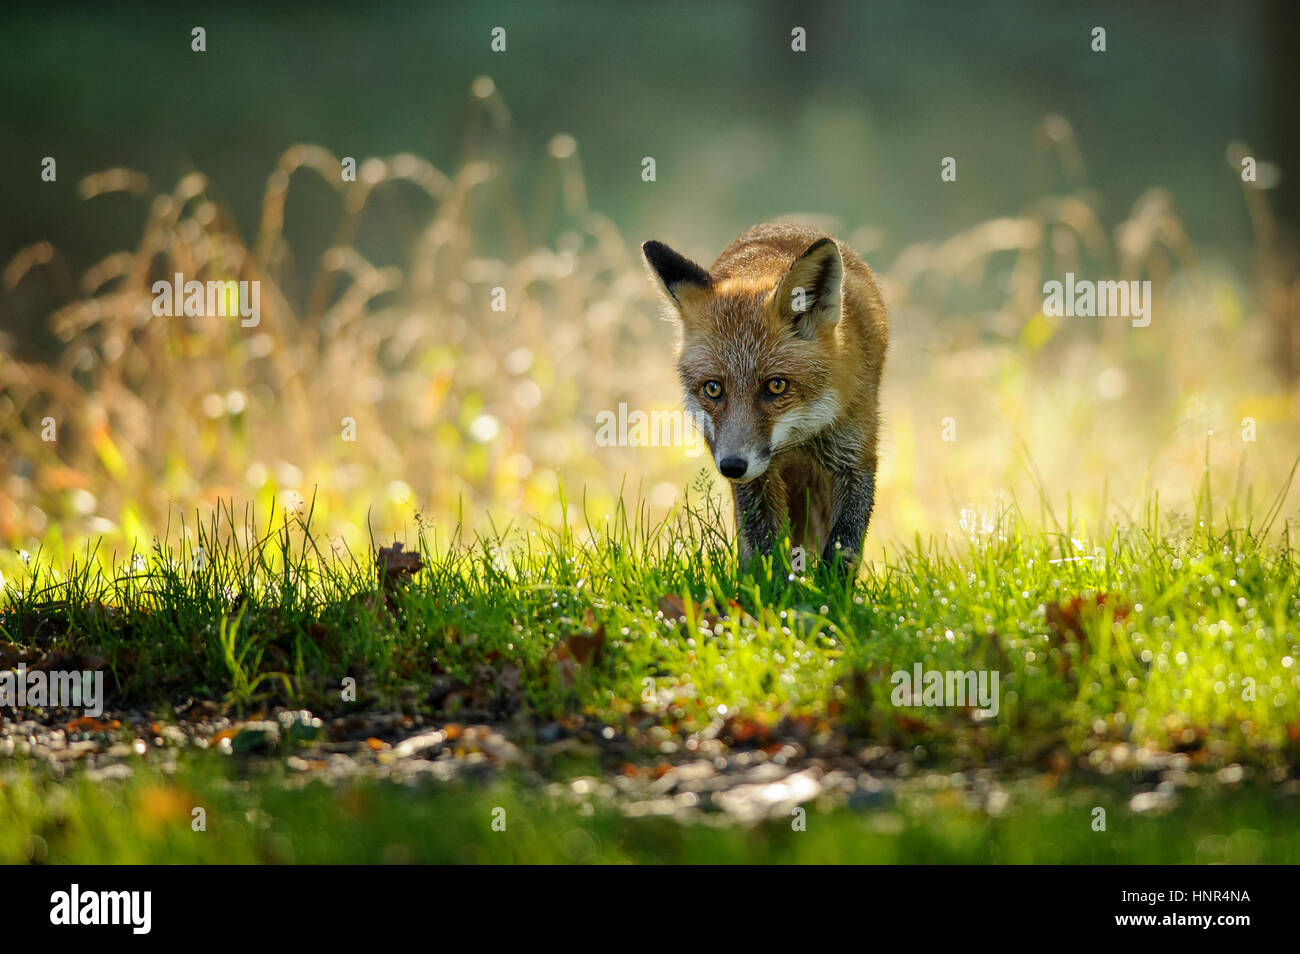 Red fox walking from front view in autumn backlight in colorfull green and yello grass - Stock Image